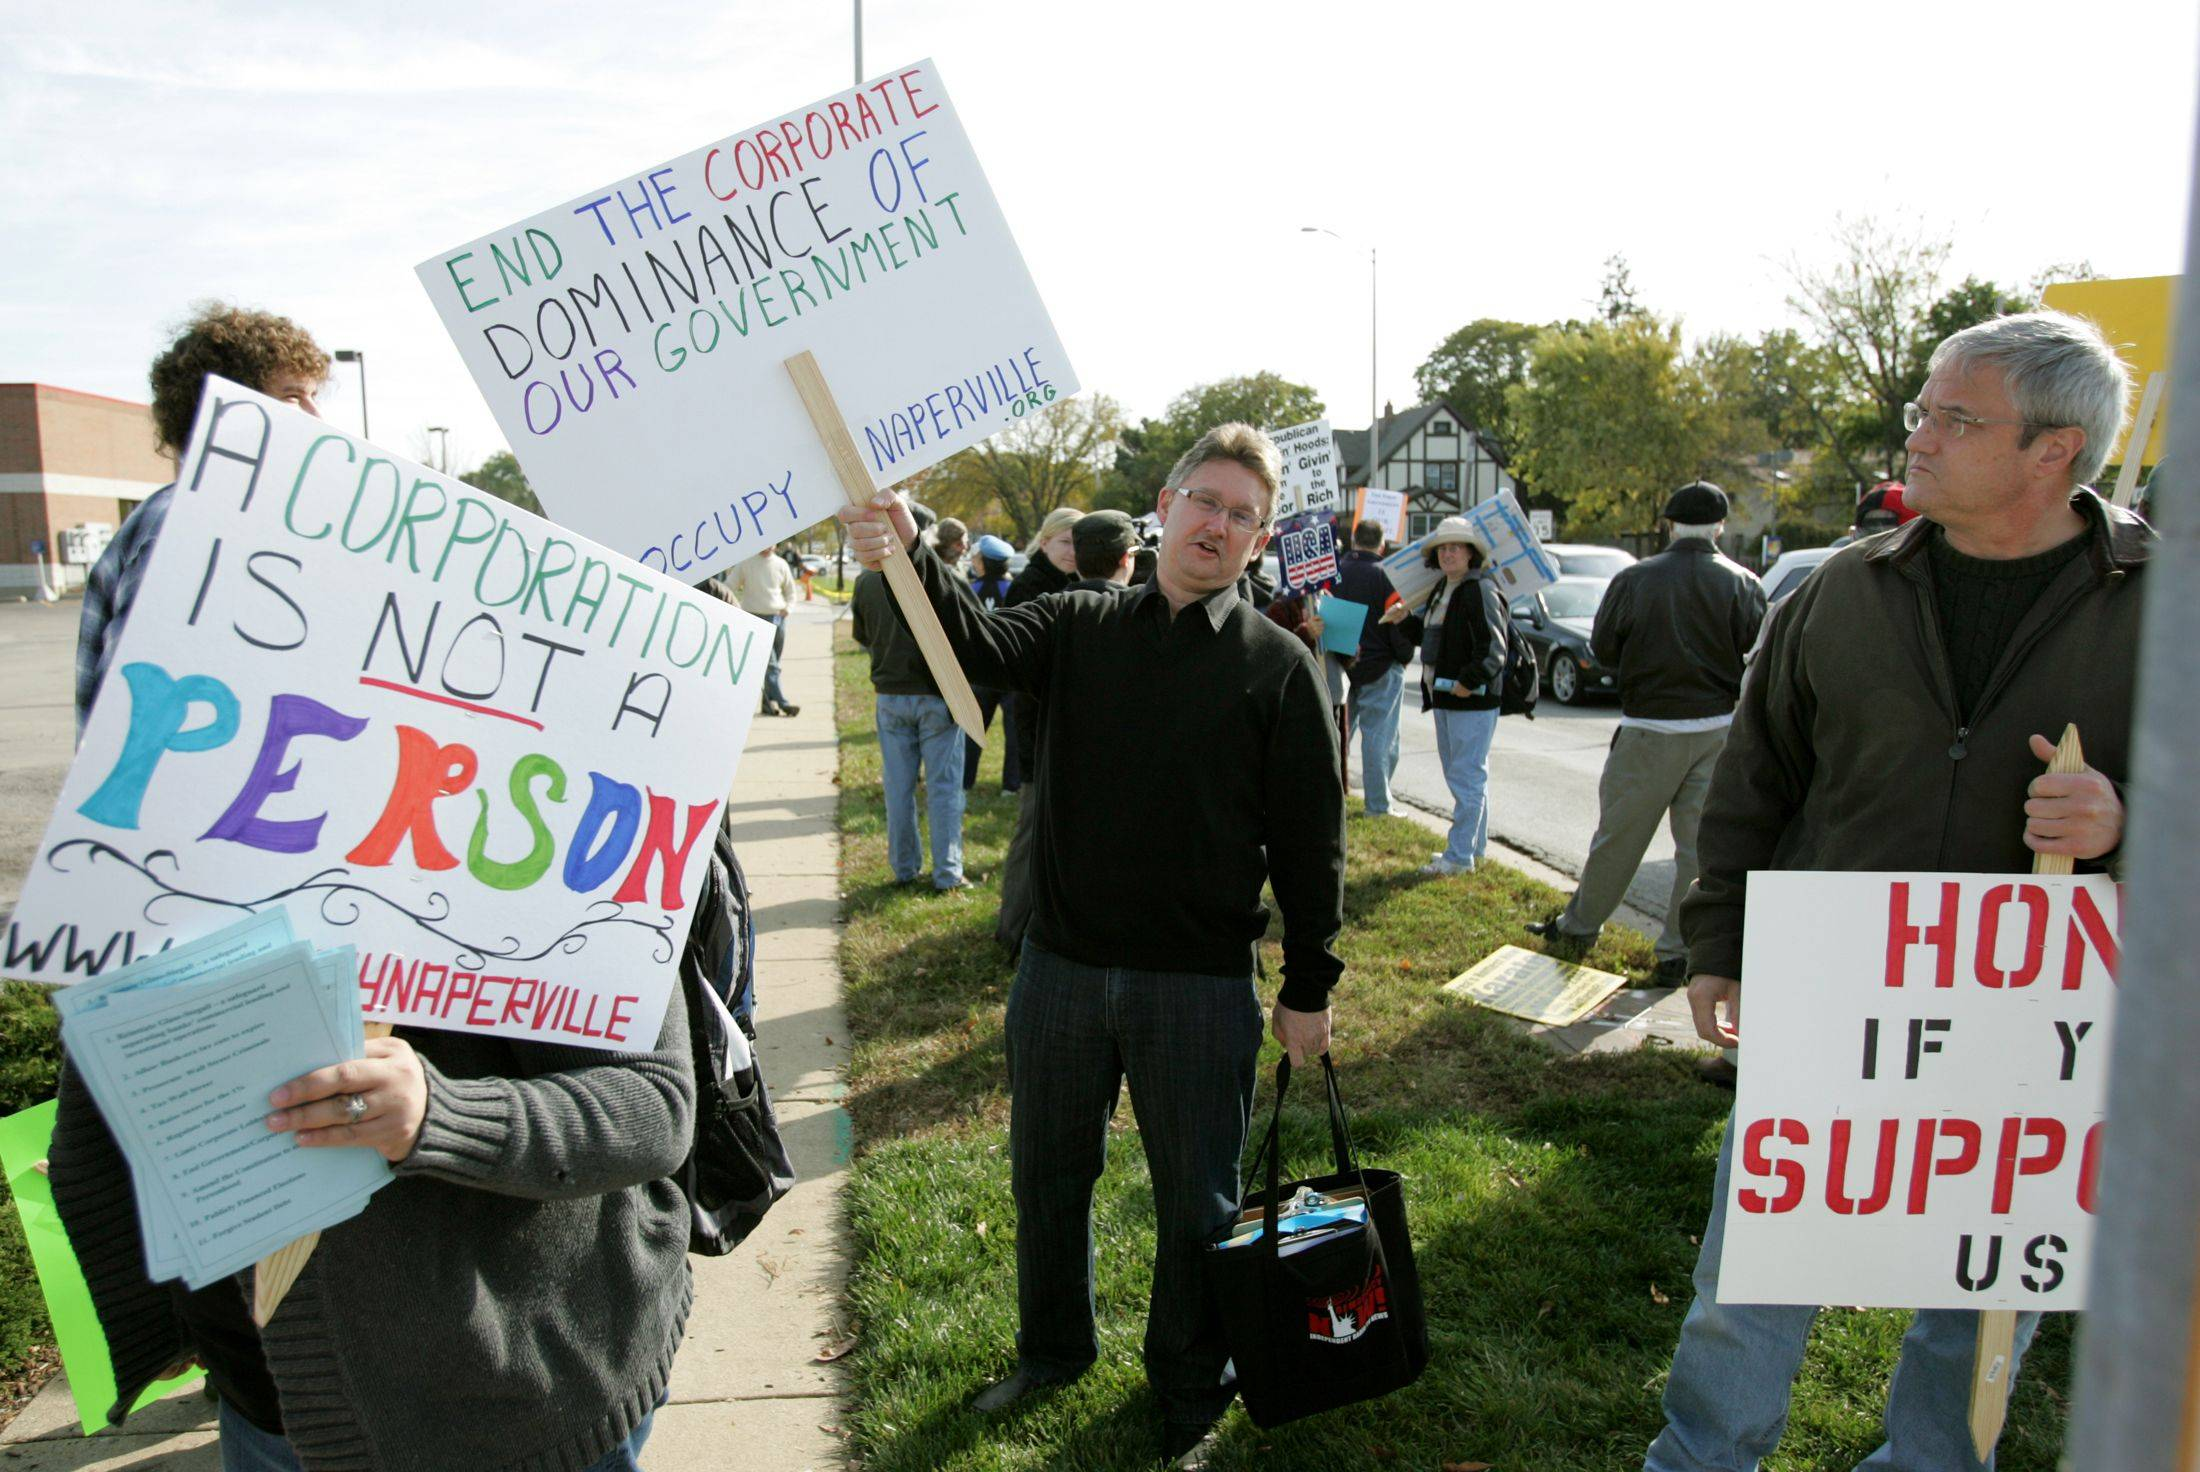 Occupy Naperville launched it first protest Oct. 22, complaining about the distribution of wealth and corporate influence on politicians.